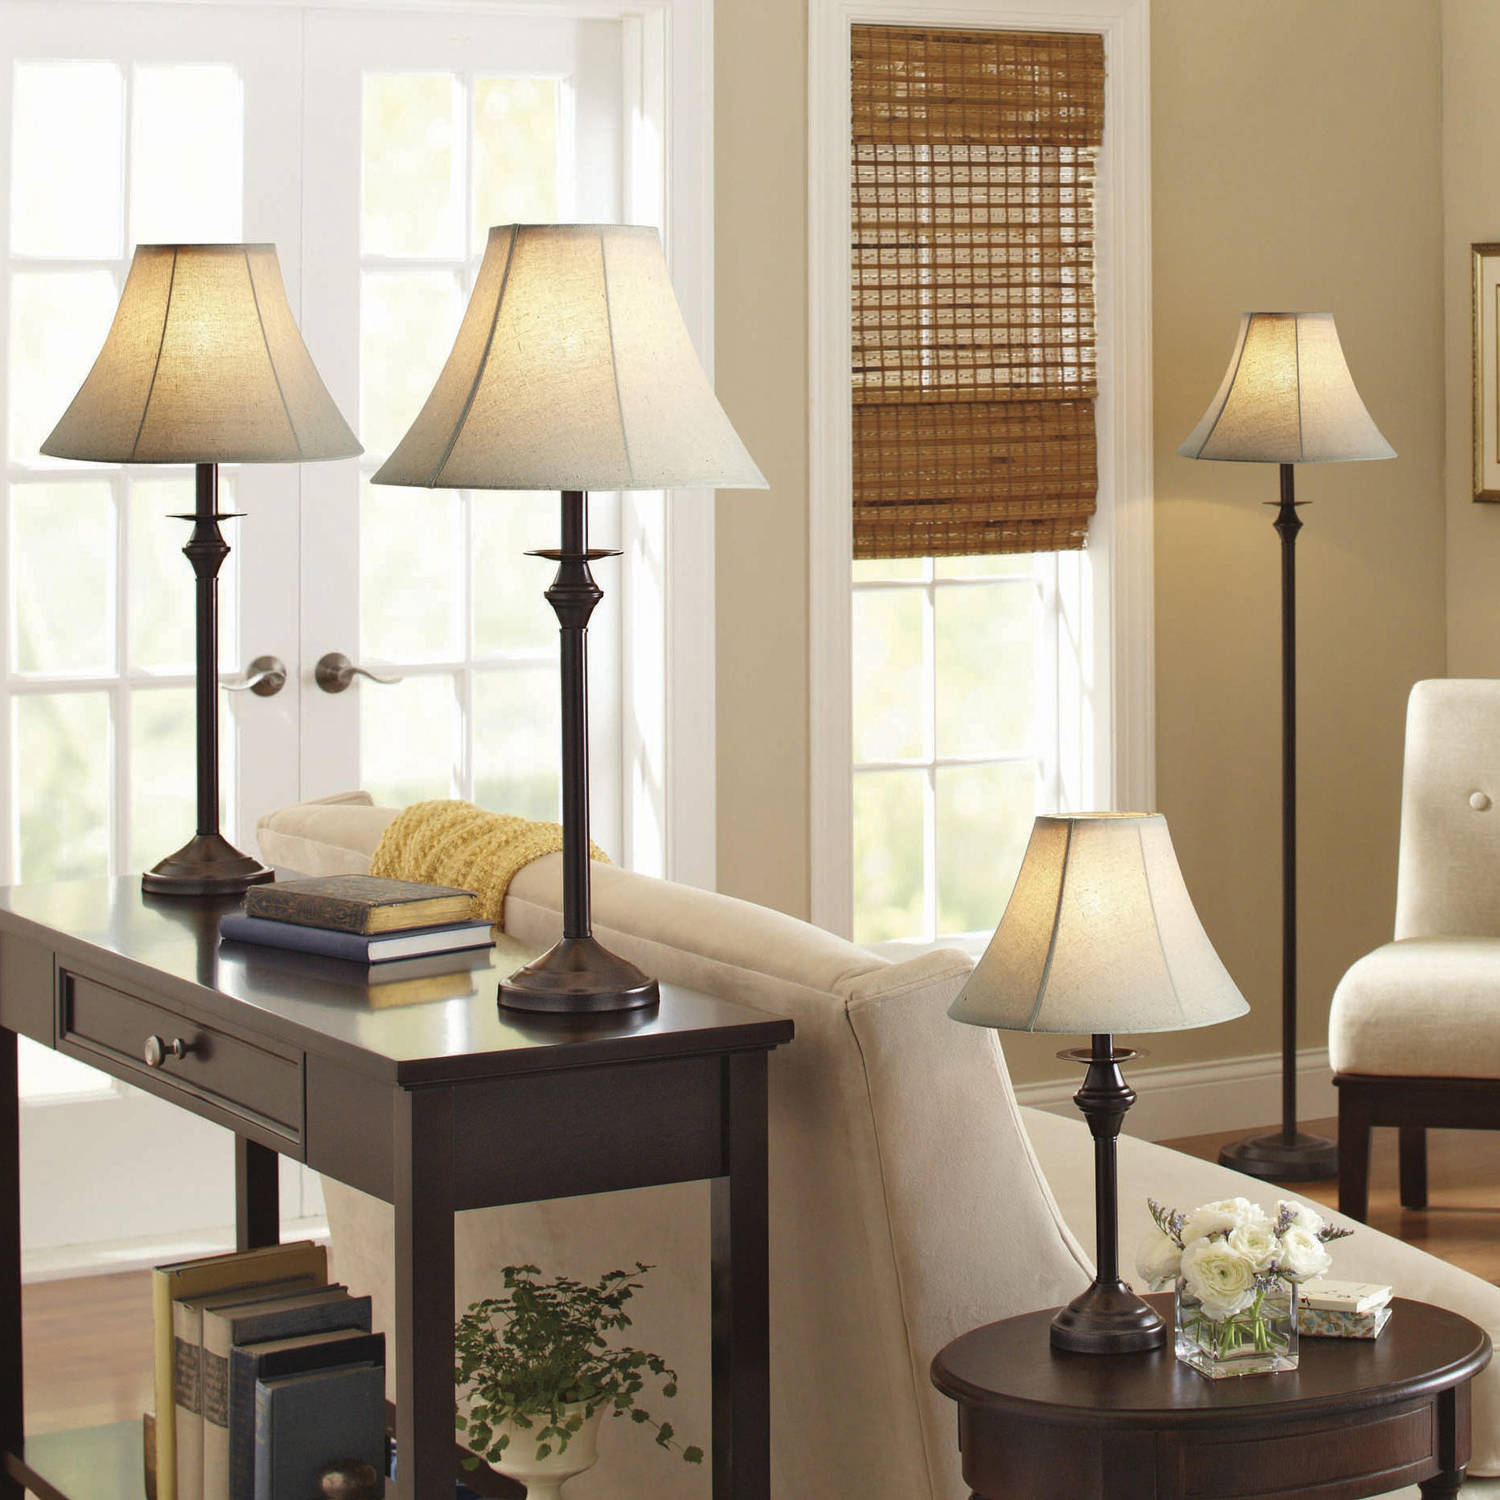 living room piece lamp set floor table accent lamps leather shade light decor black side small for bedroom cherry wood dining and chairs wooden storage crates ikea long skinny